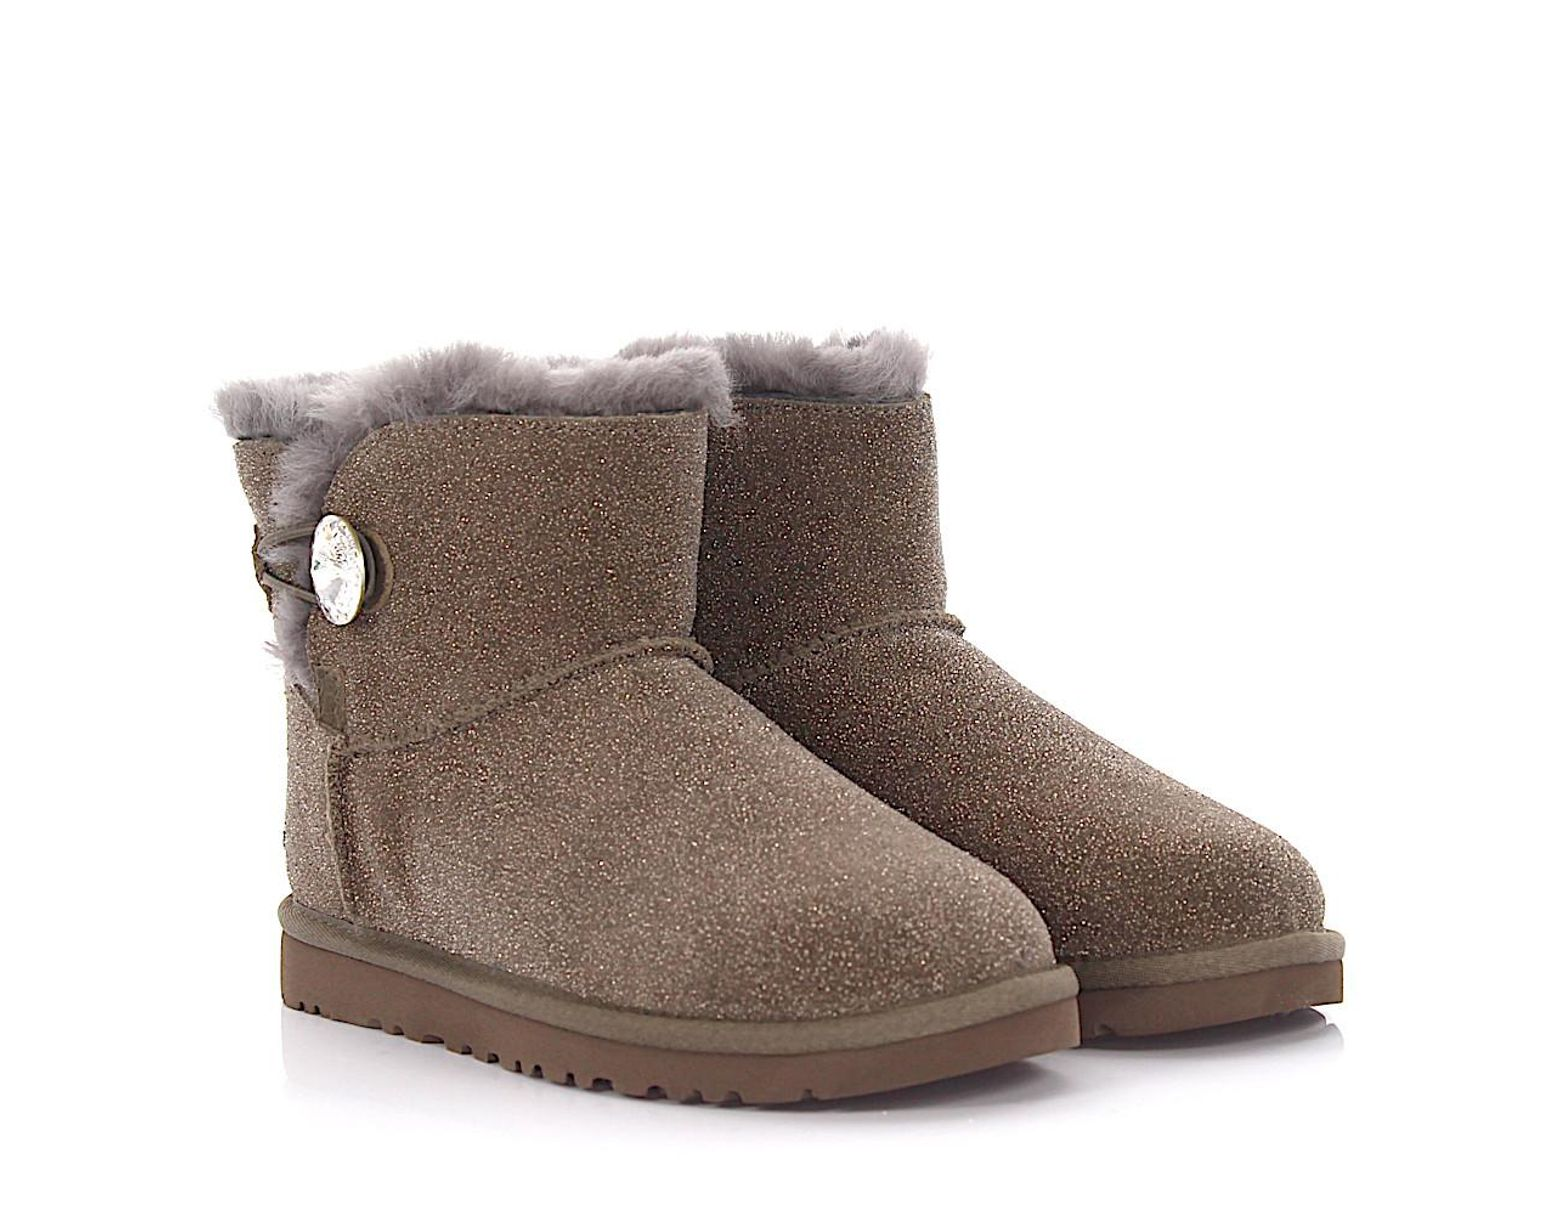 cb4fcefcaa2 Women's Ankle Boots Gray Mini Bailey Button Bling